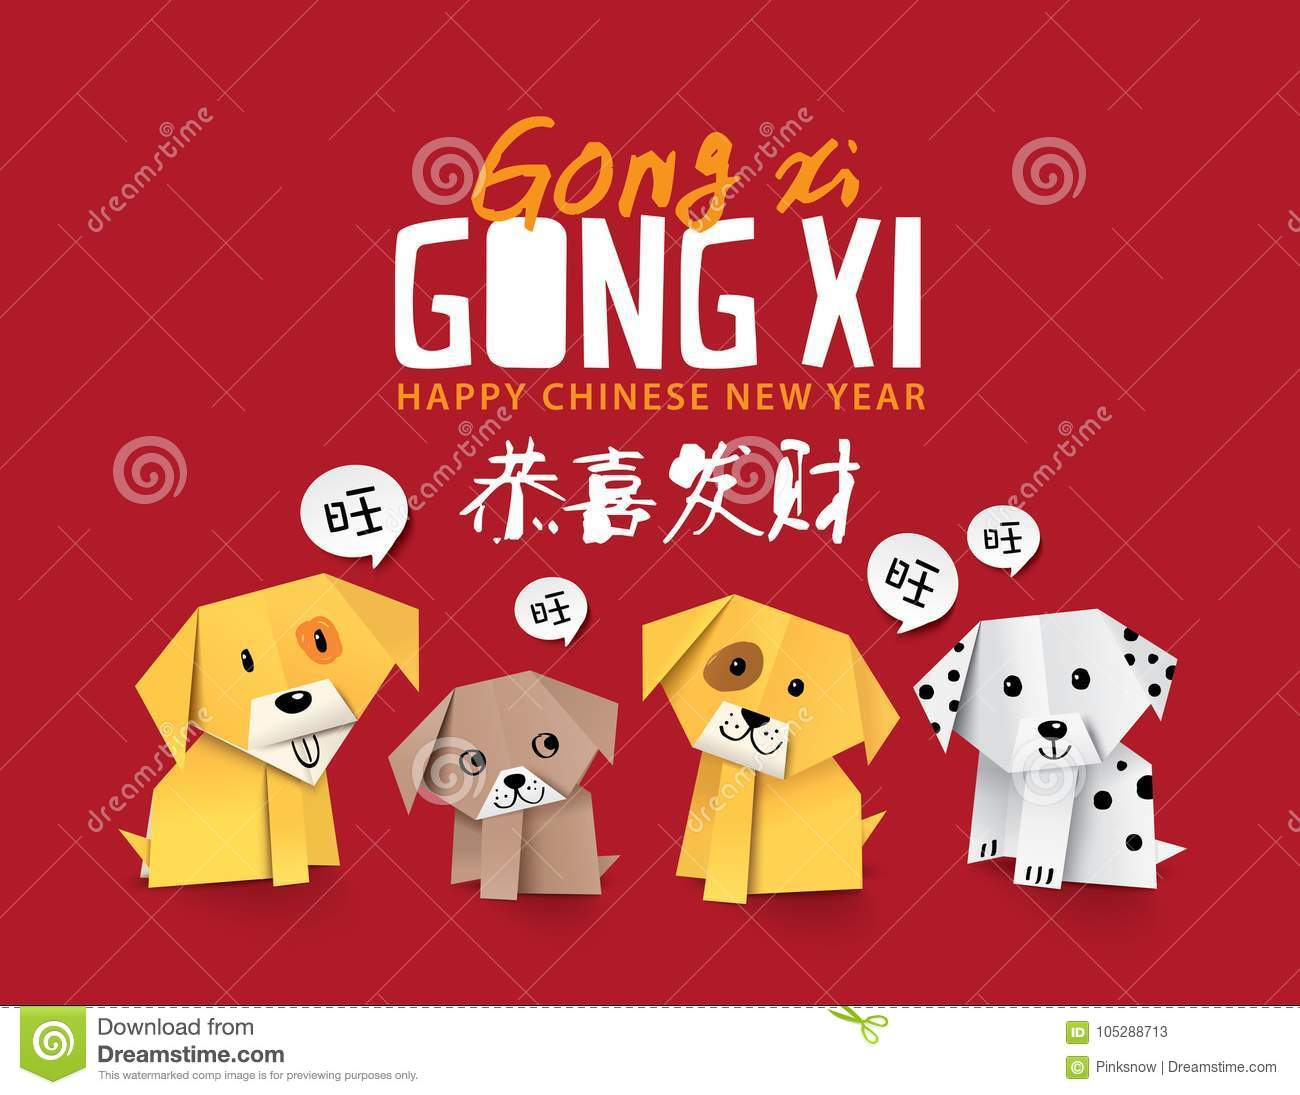 2018 Chinese New Year Greeting Card Design With Origami Dogs Stock